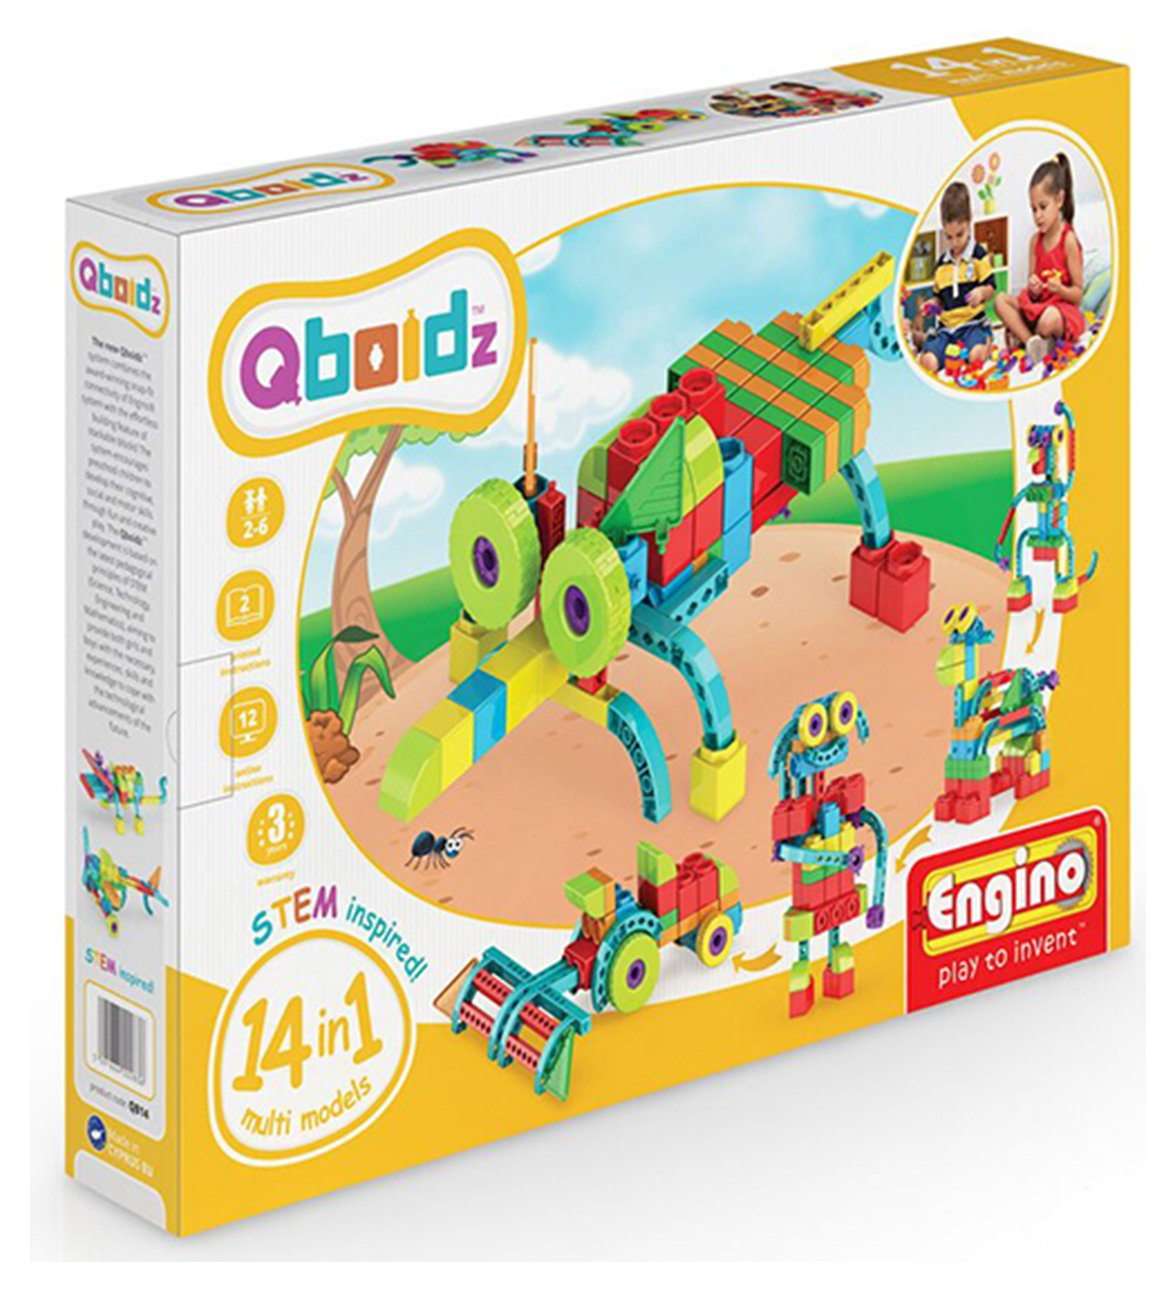 qboidz-14-in-1-multi-model-set